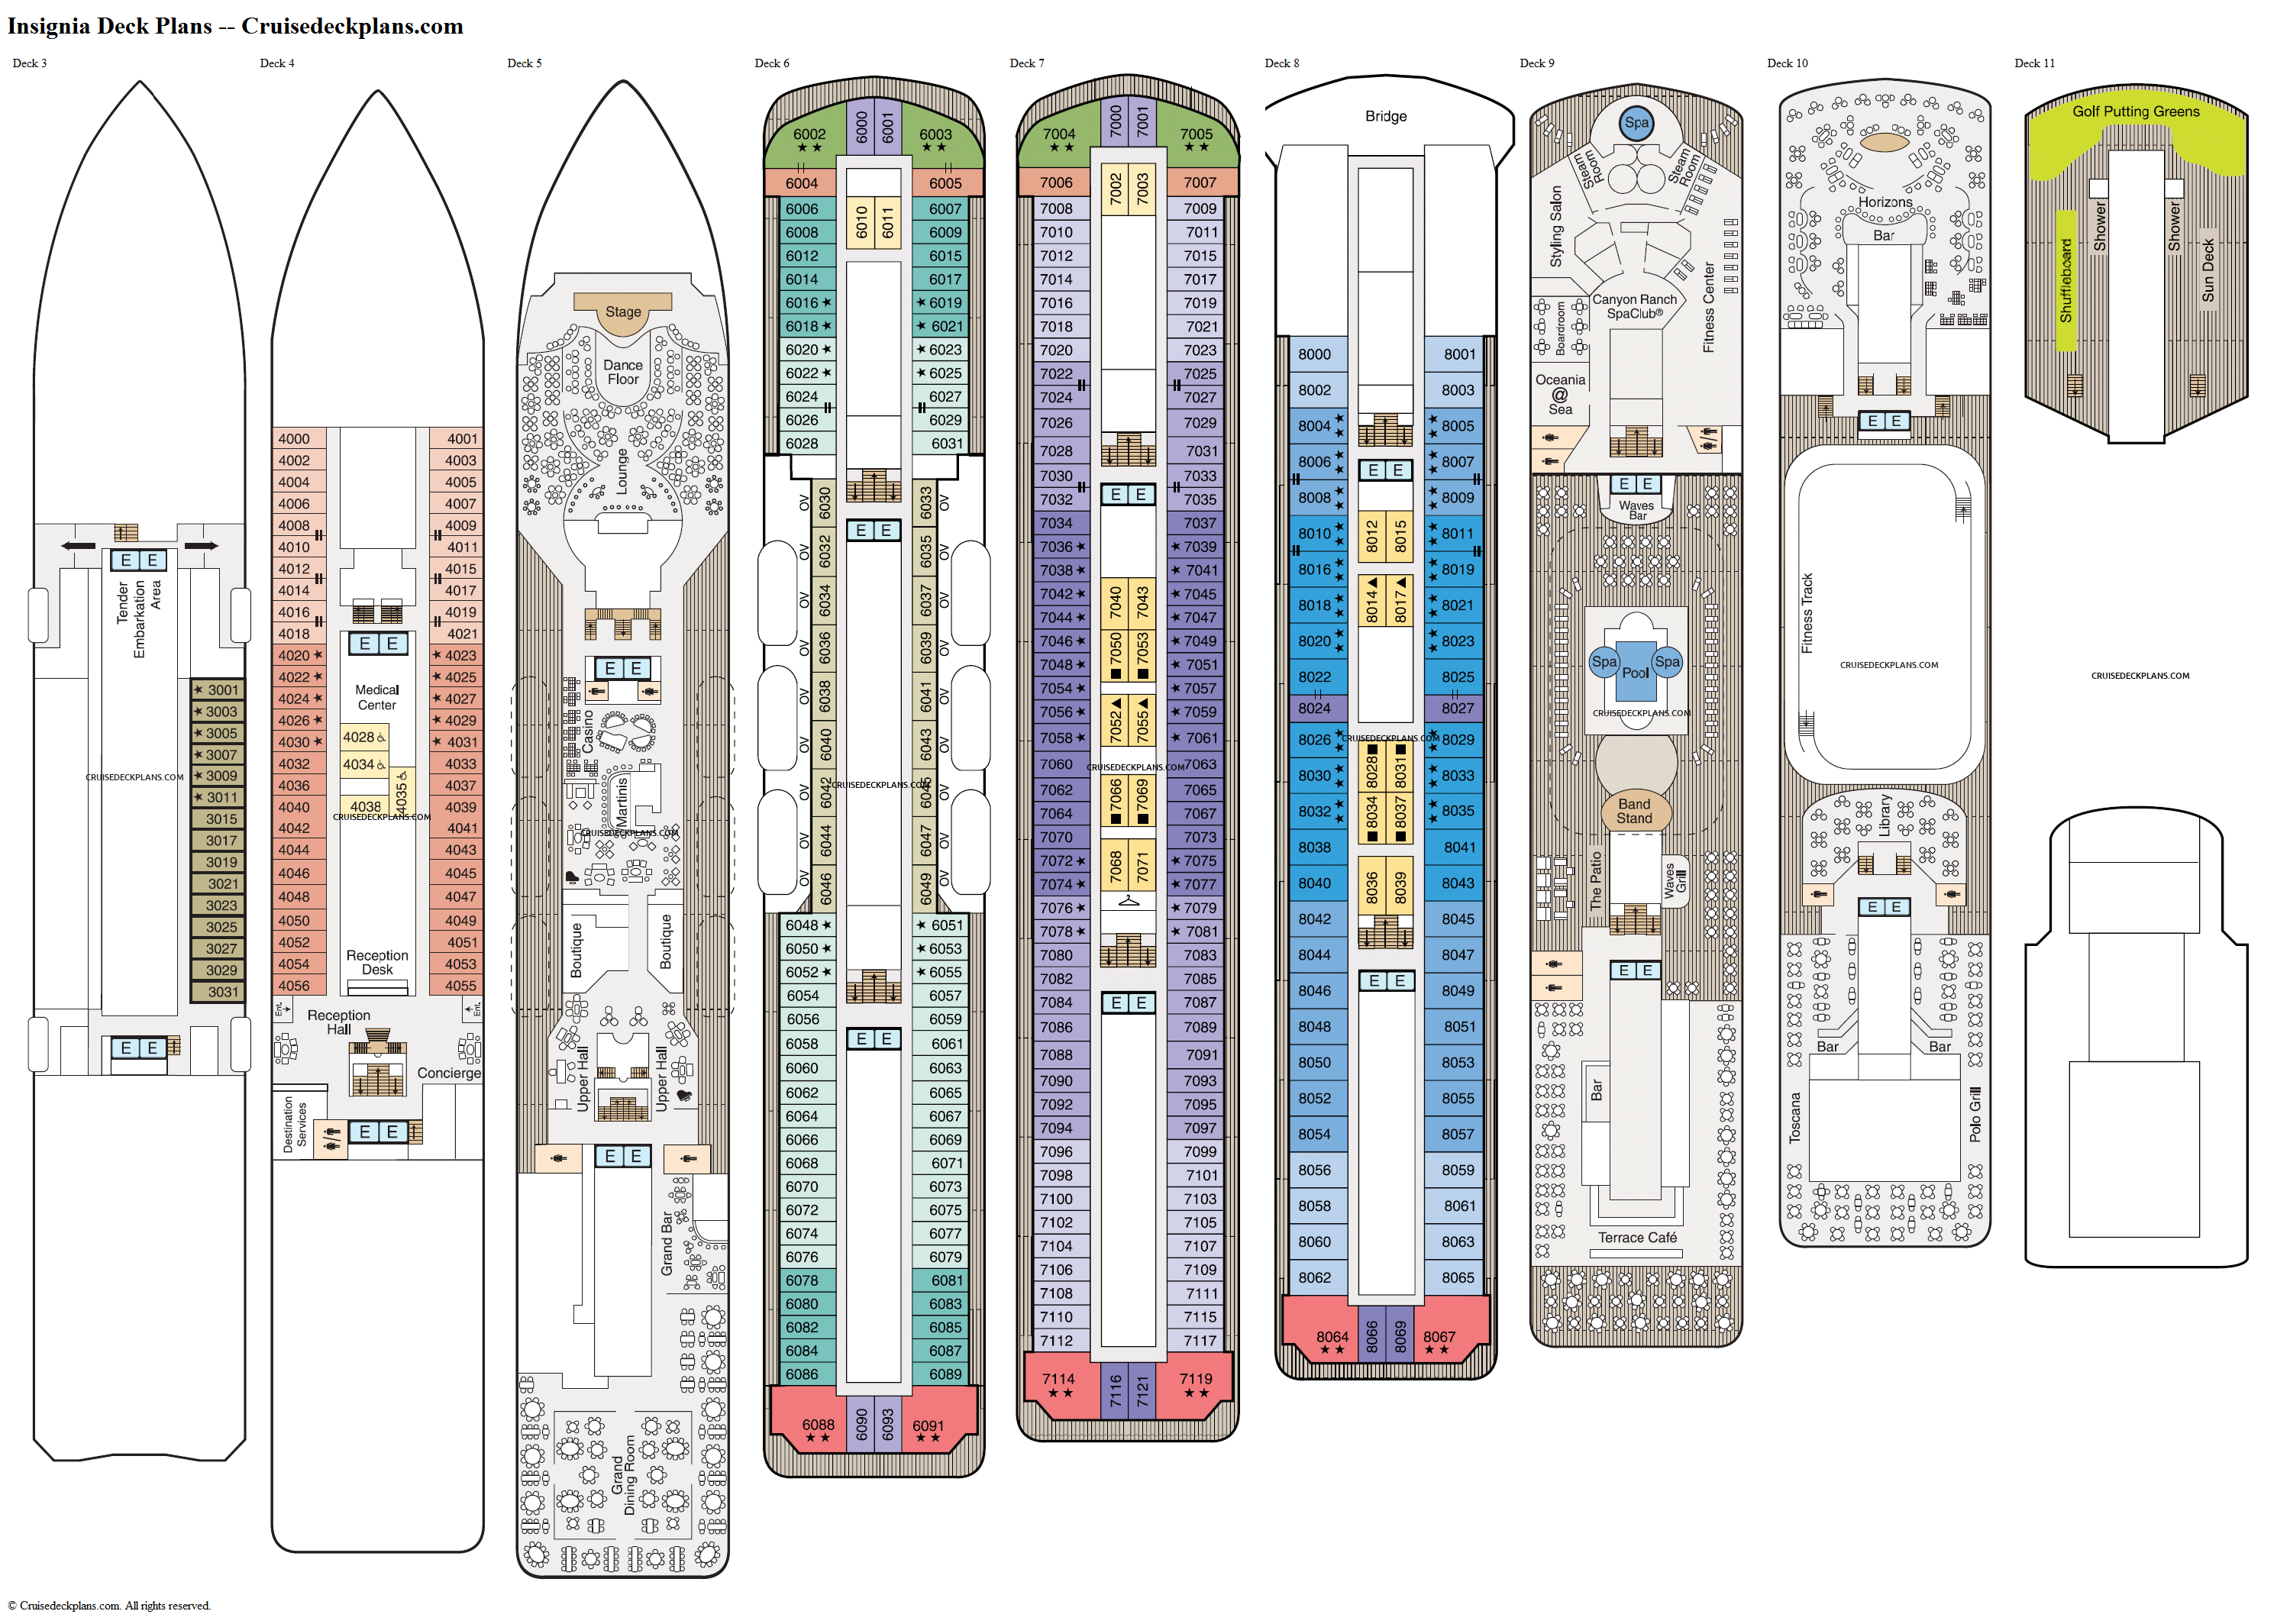 Insignia deck plans image